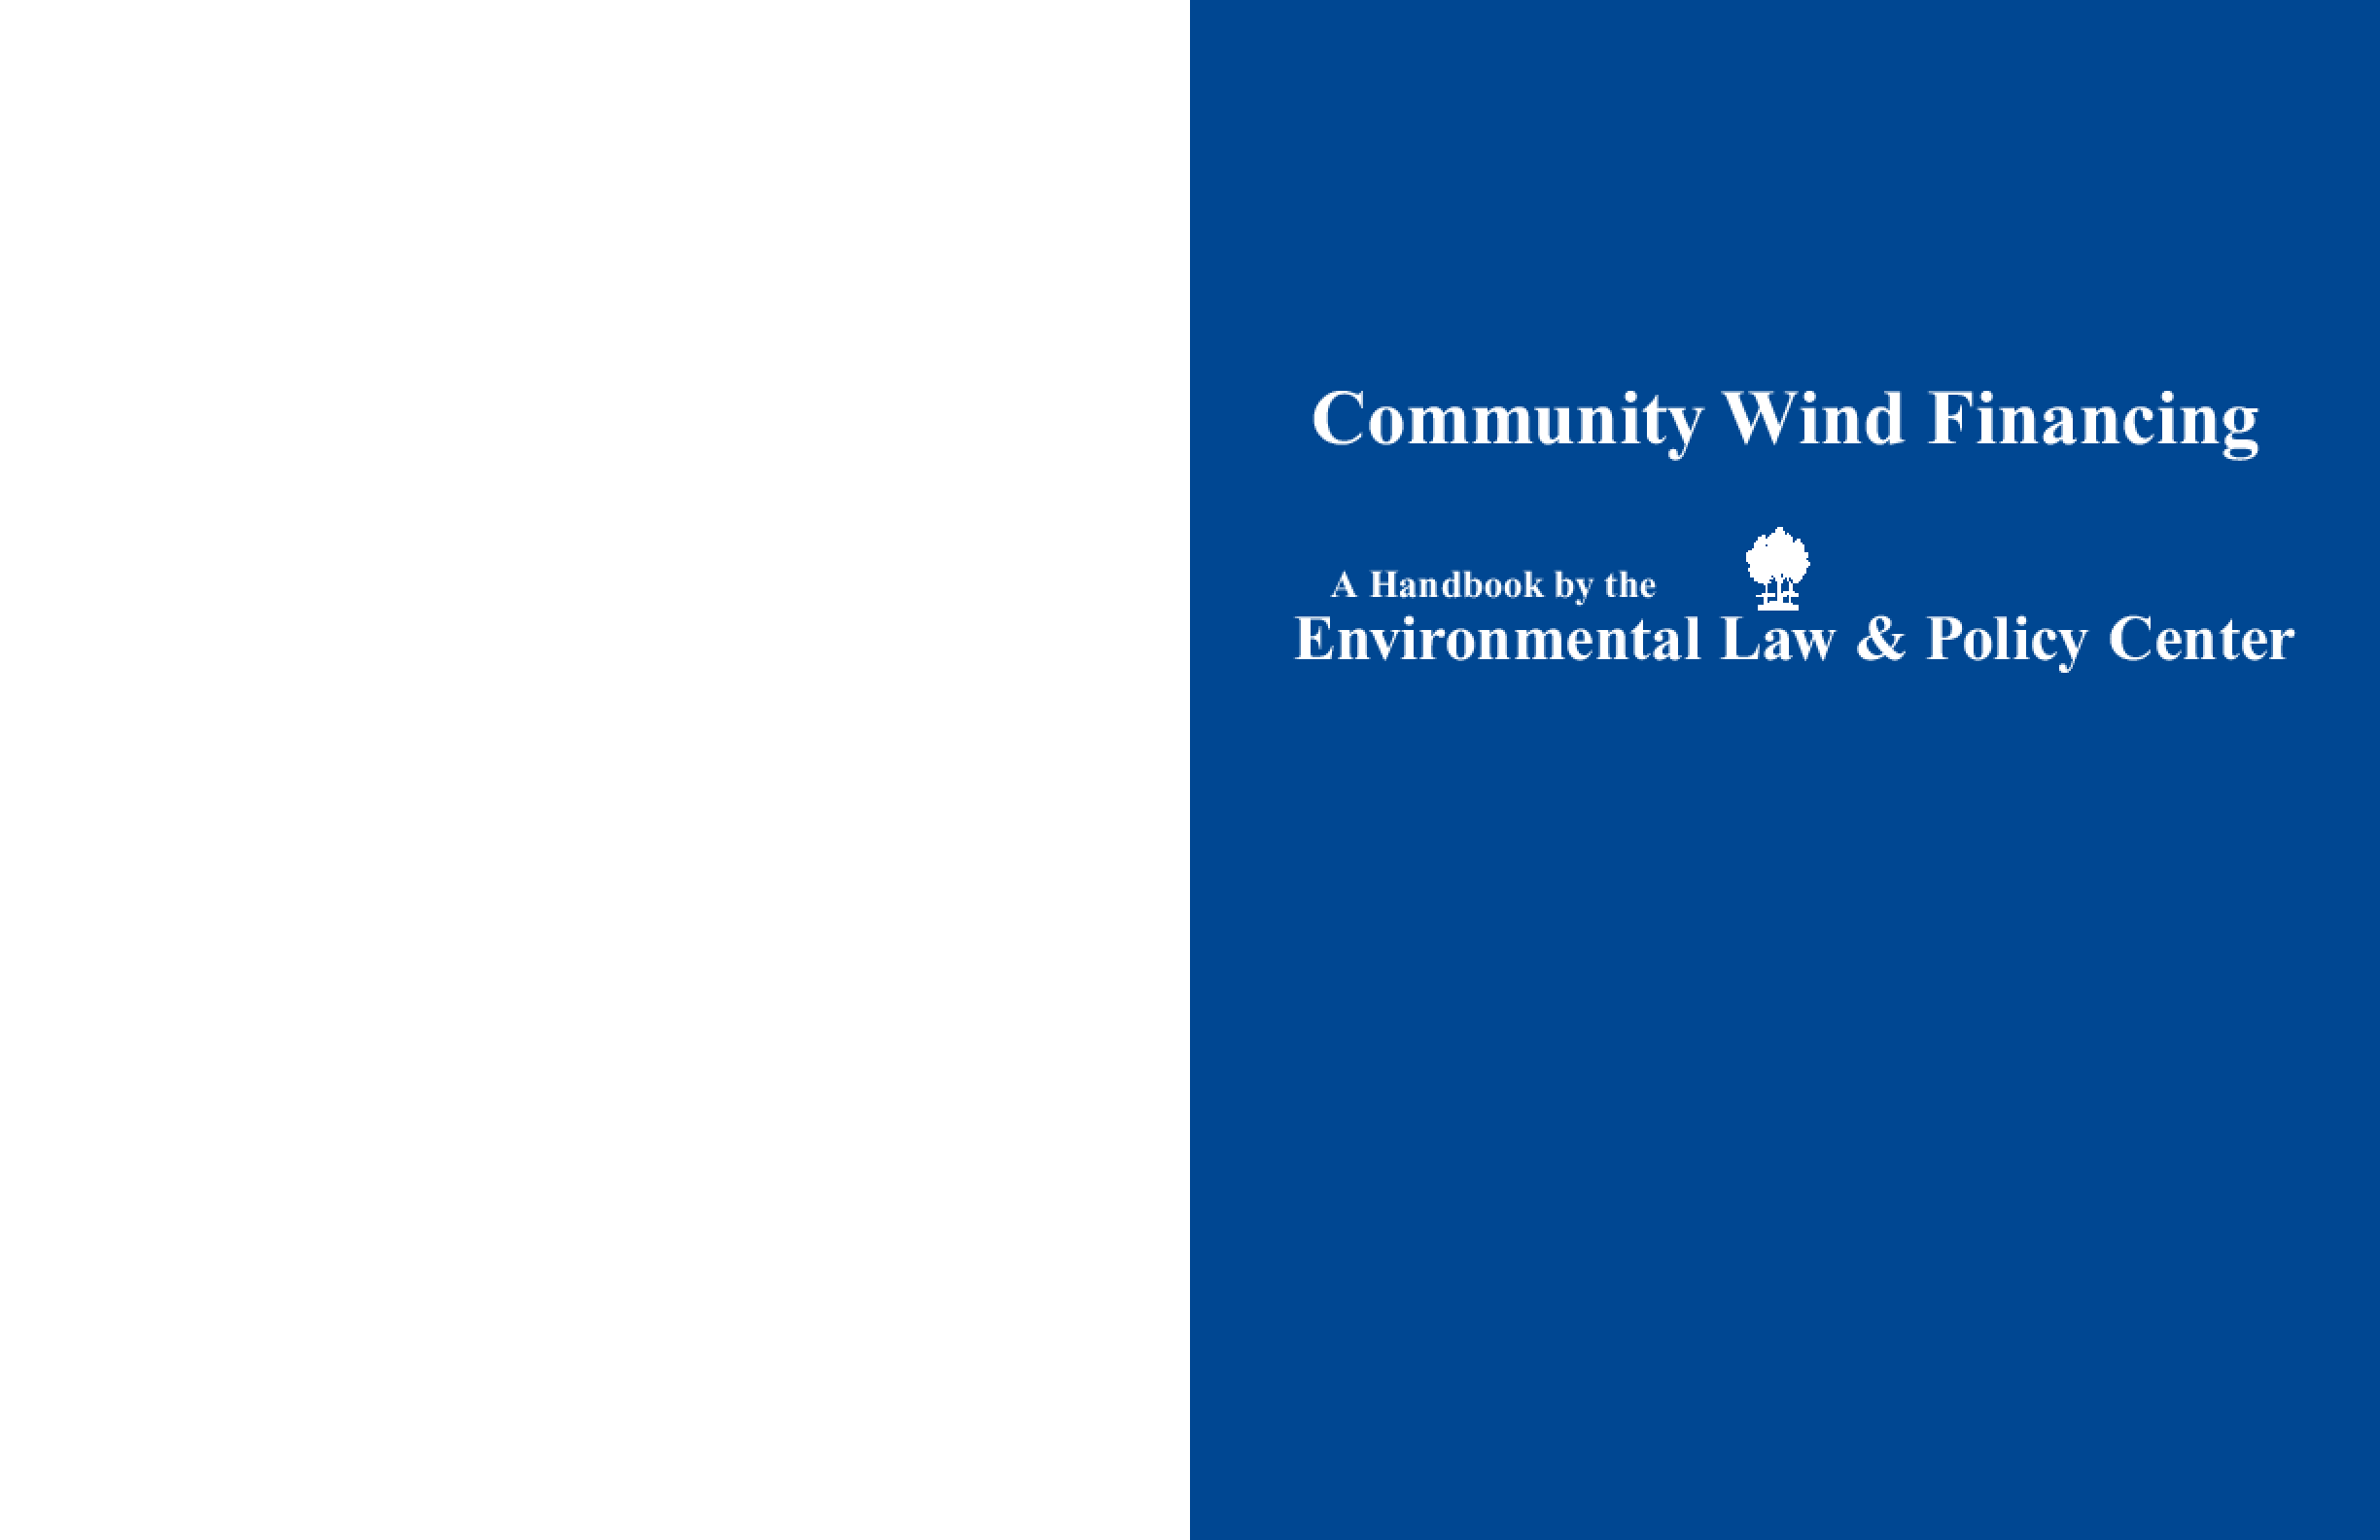 Community Wind Financing Handbook